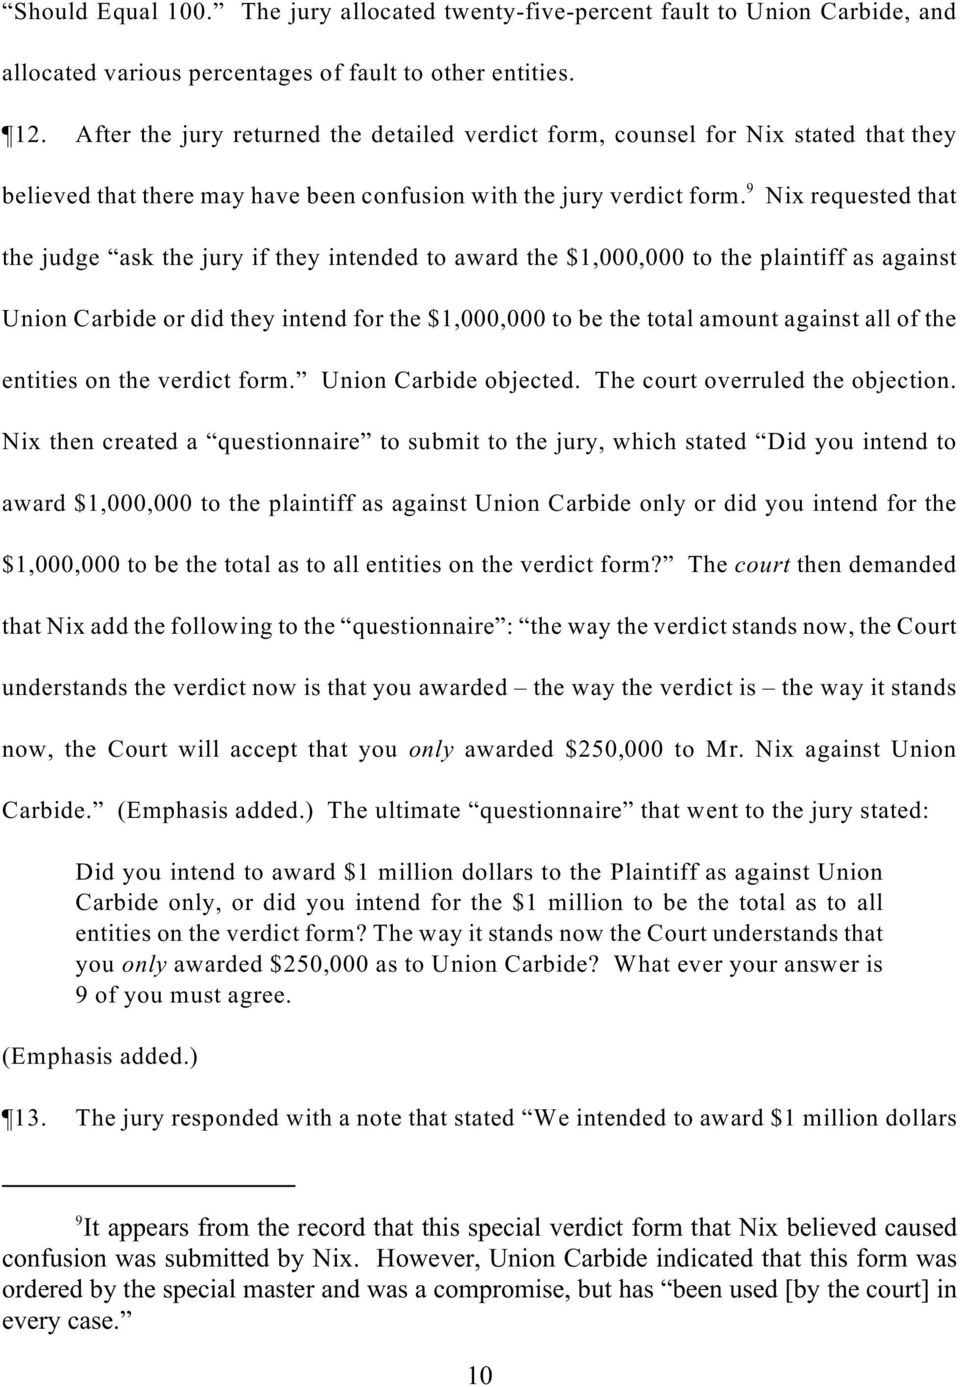 Nix requested that the judge ask the jury if they intended to award the $1,000,000 to the plaintiff as against Union Carbide or did they intend for the $1,000,000 to be the total amount against all